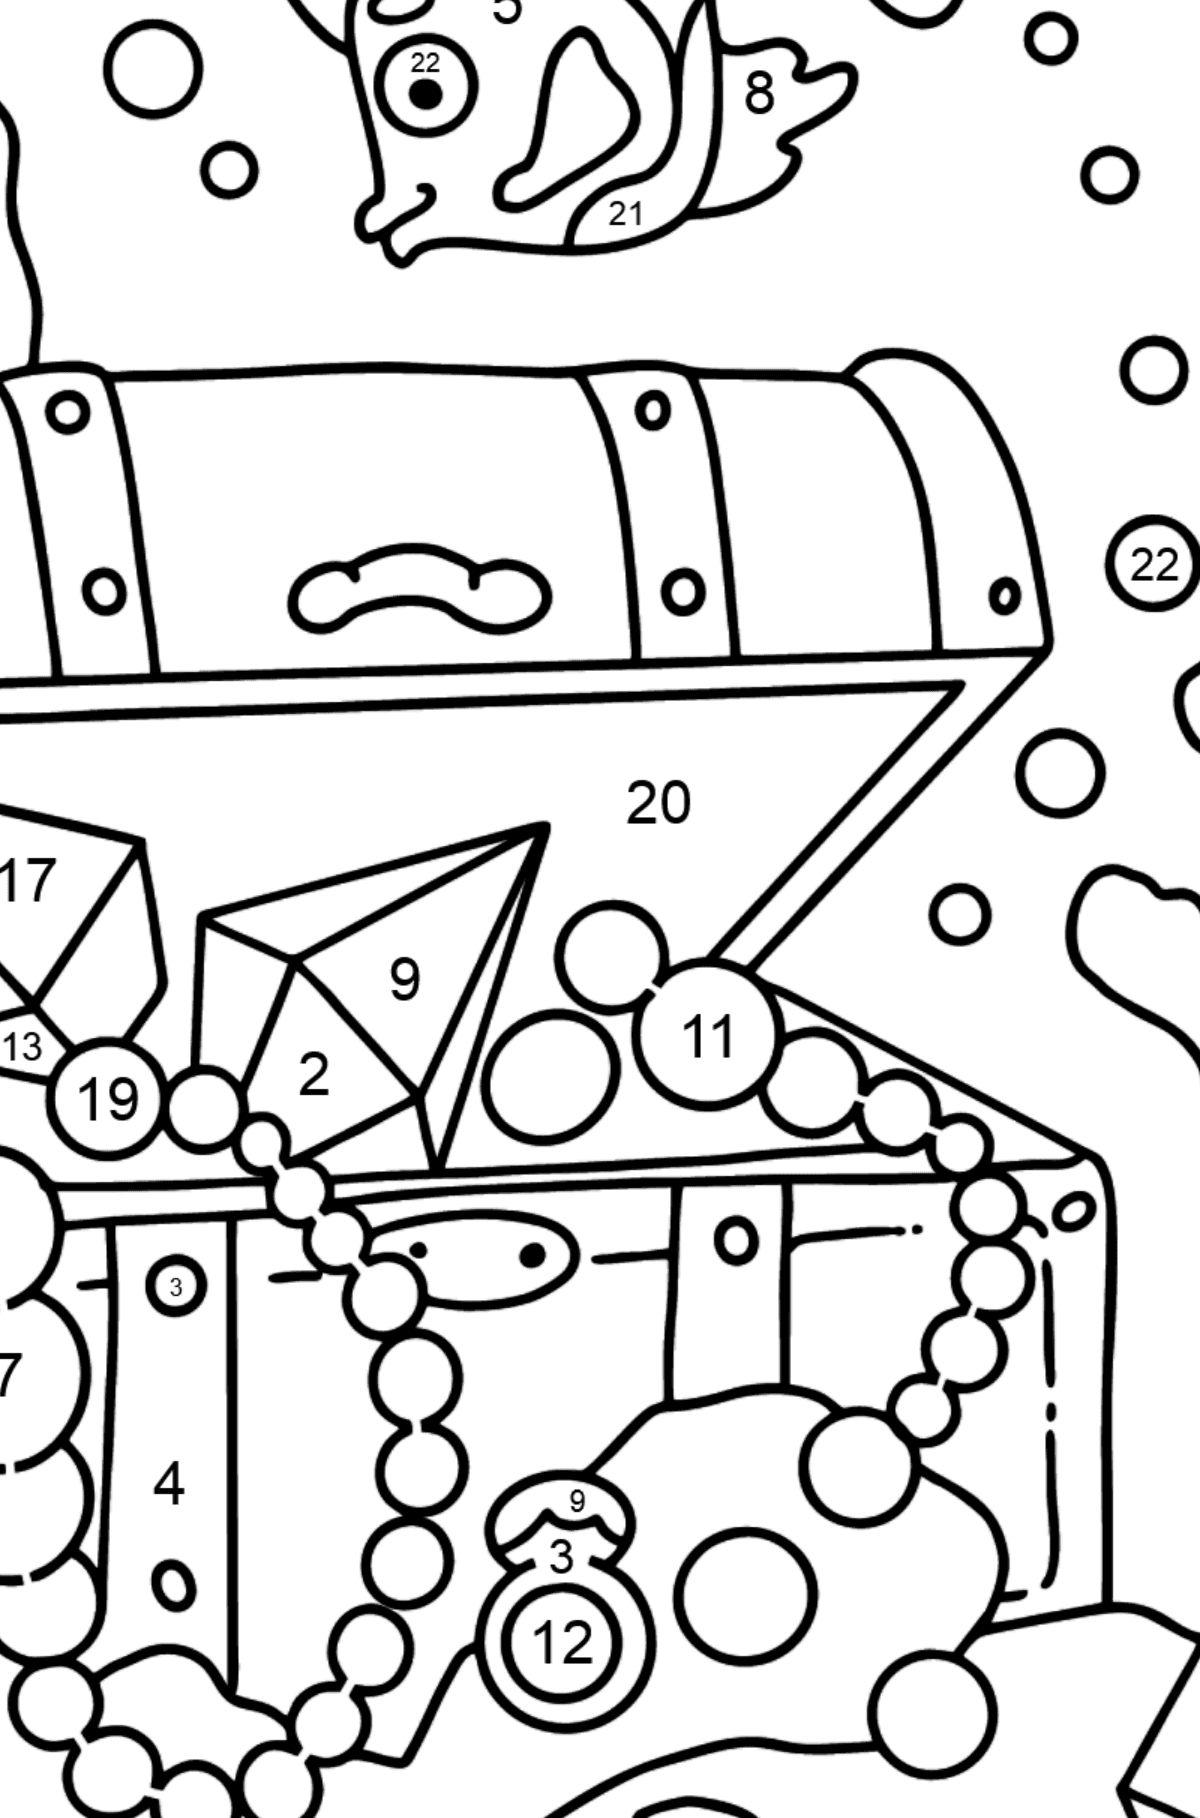 Coloring Page - A Fish is Looking for a Treasure - Coloring by Numbers for Kids